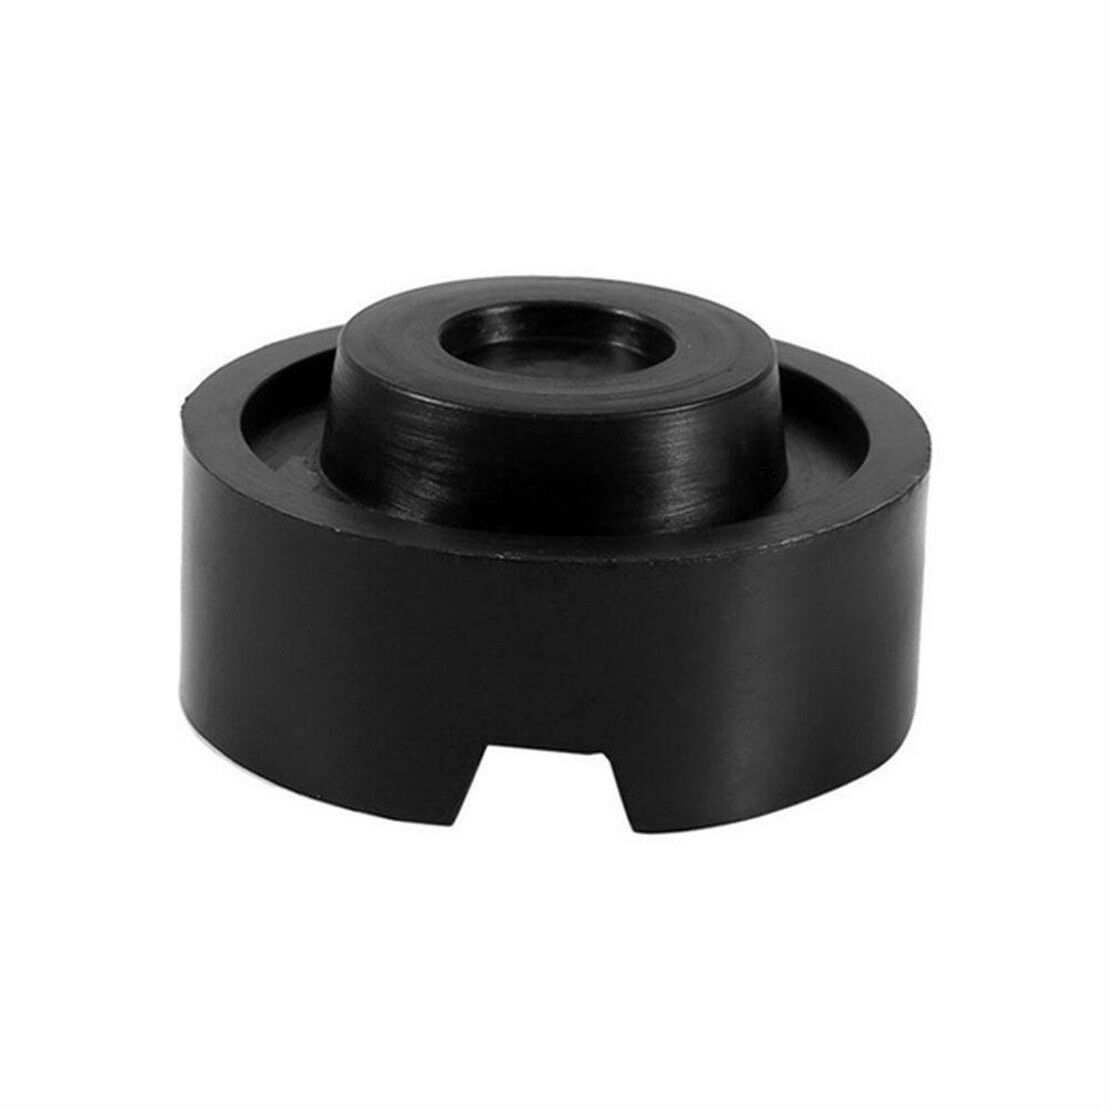 Slotted Frame Rail Floor Jack Lift Rubber Pad Adapter For